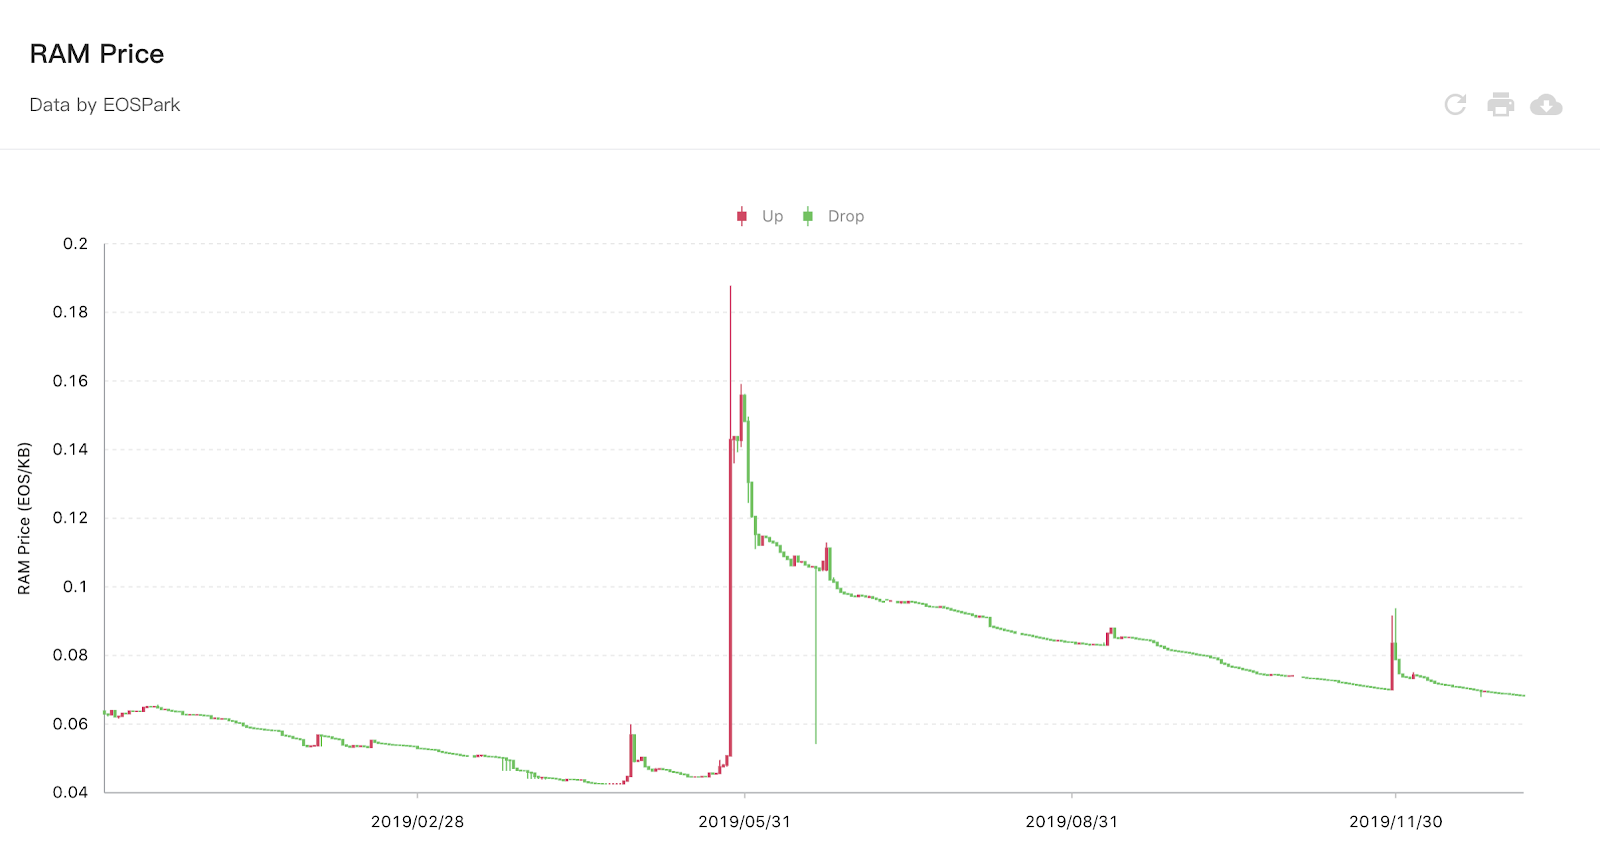 Chart of EOS ram prices